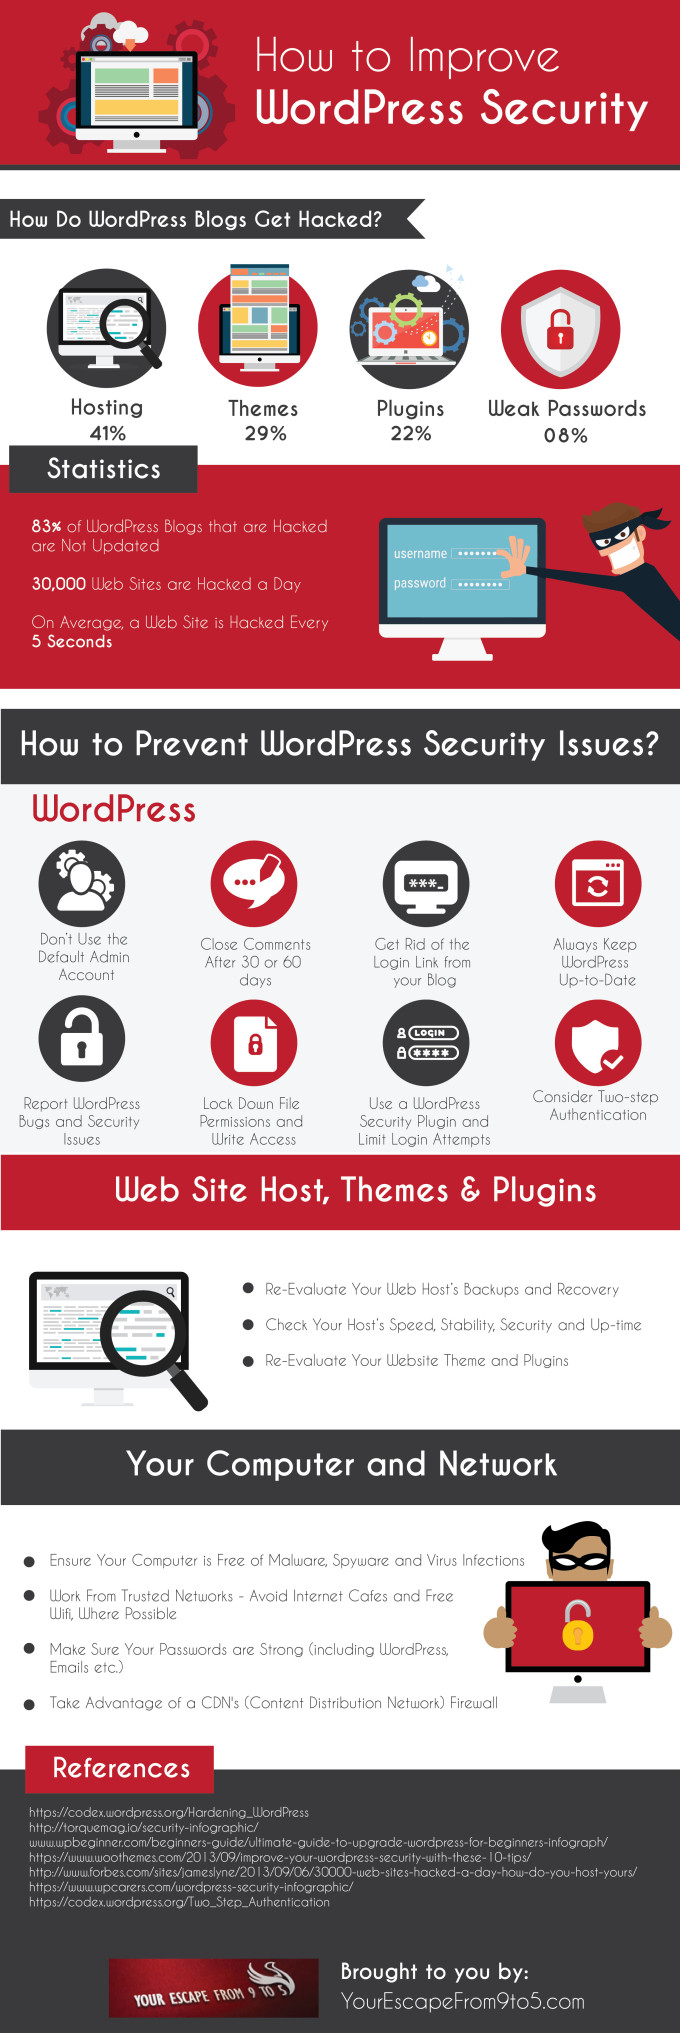 How-to-Improve-WordPress-Security-Infographic-image